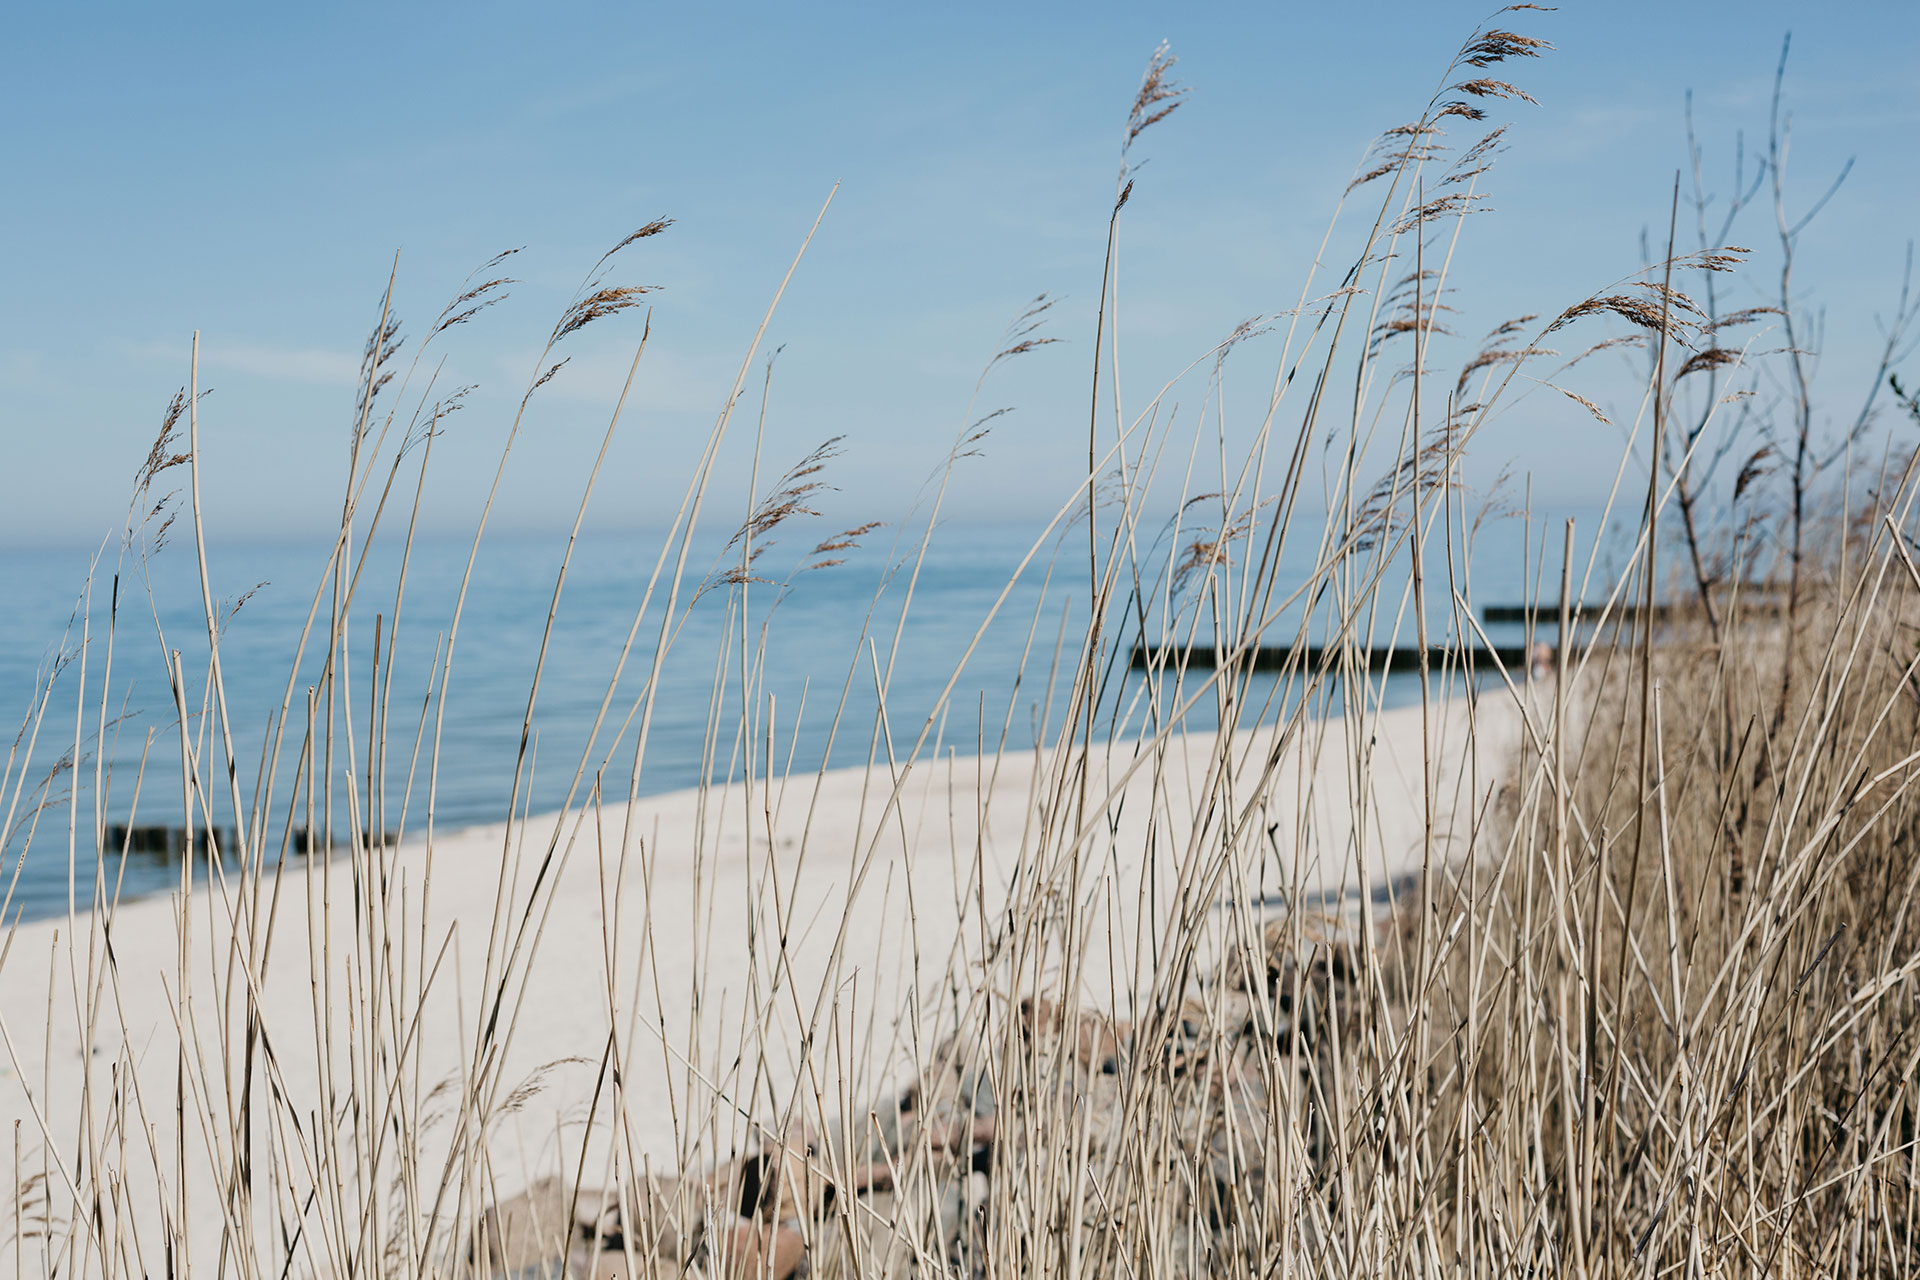 Curonian Spit National Park in Kaliningrad oblast of Russia